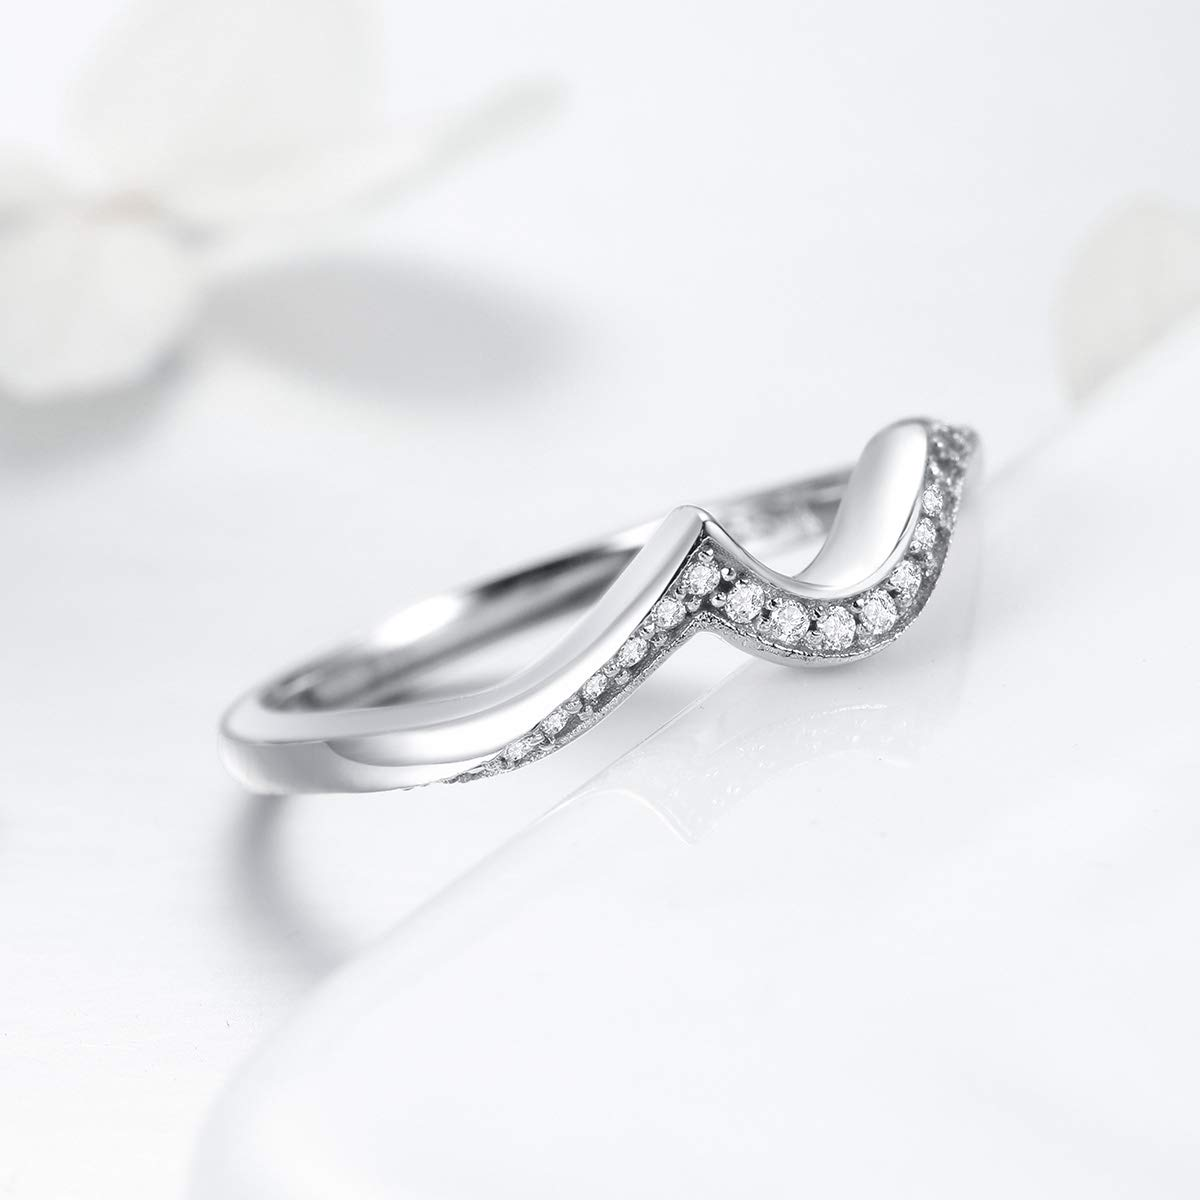 WOSTU 925 Sterling Silver Wave Rings Cubic Zirconia Stacking Rings Daily Ring for Women Girls